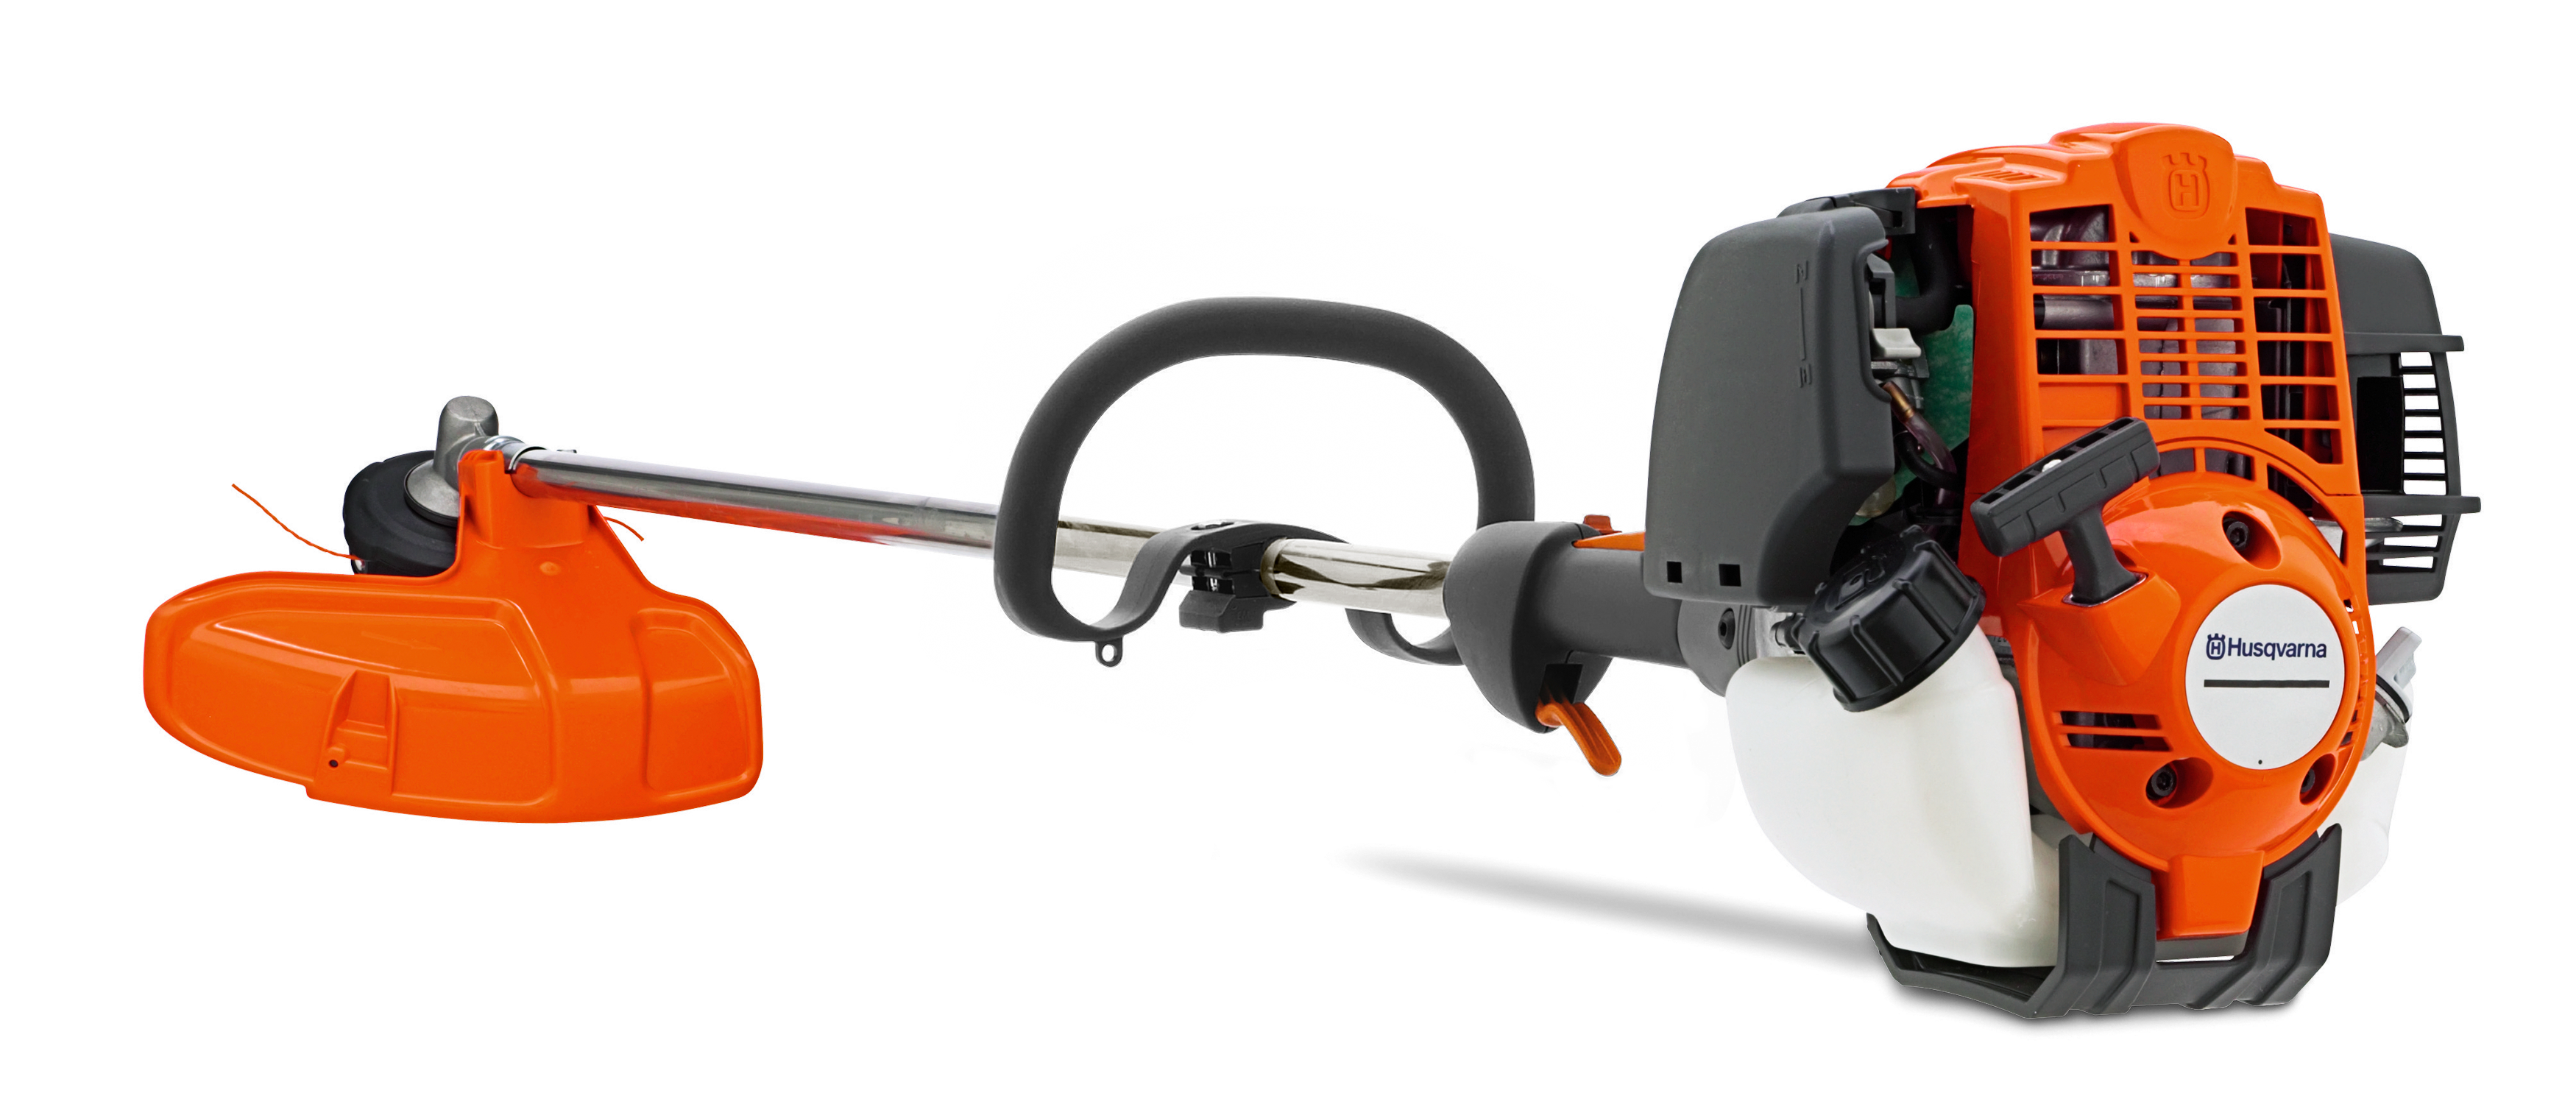 Image for 324L Gas Straight Shaft String Trimmer                                                                                           from HusqvarnaB2C